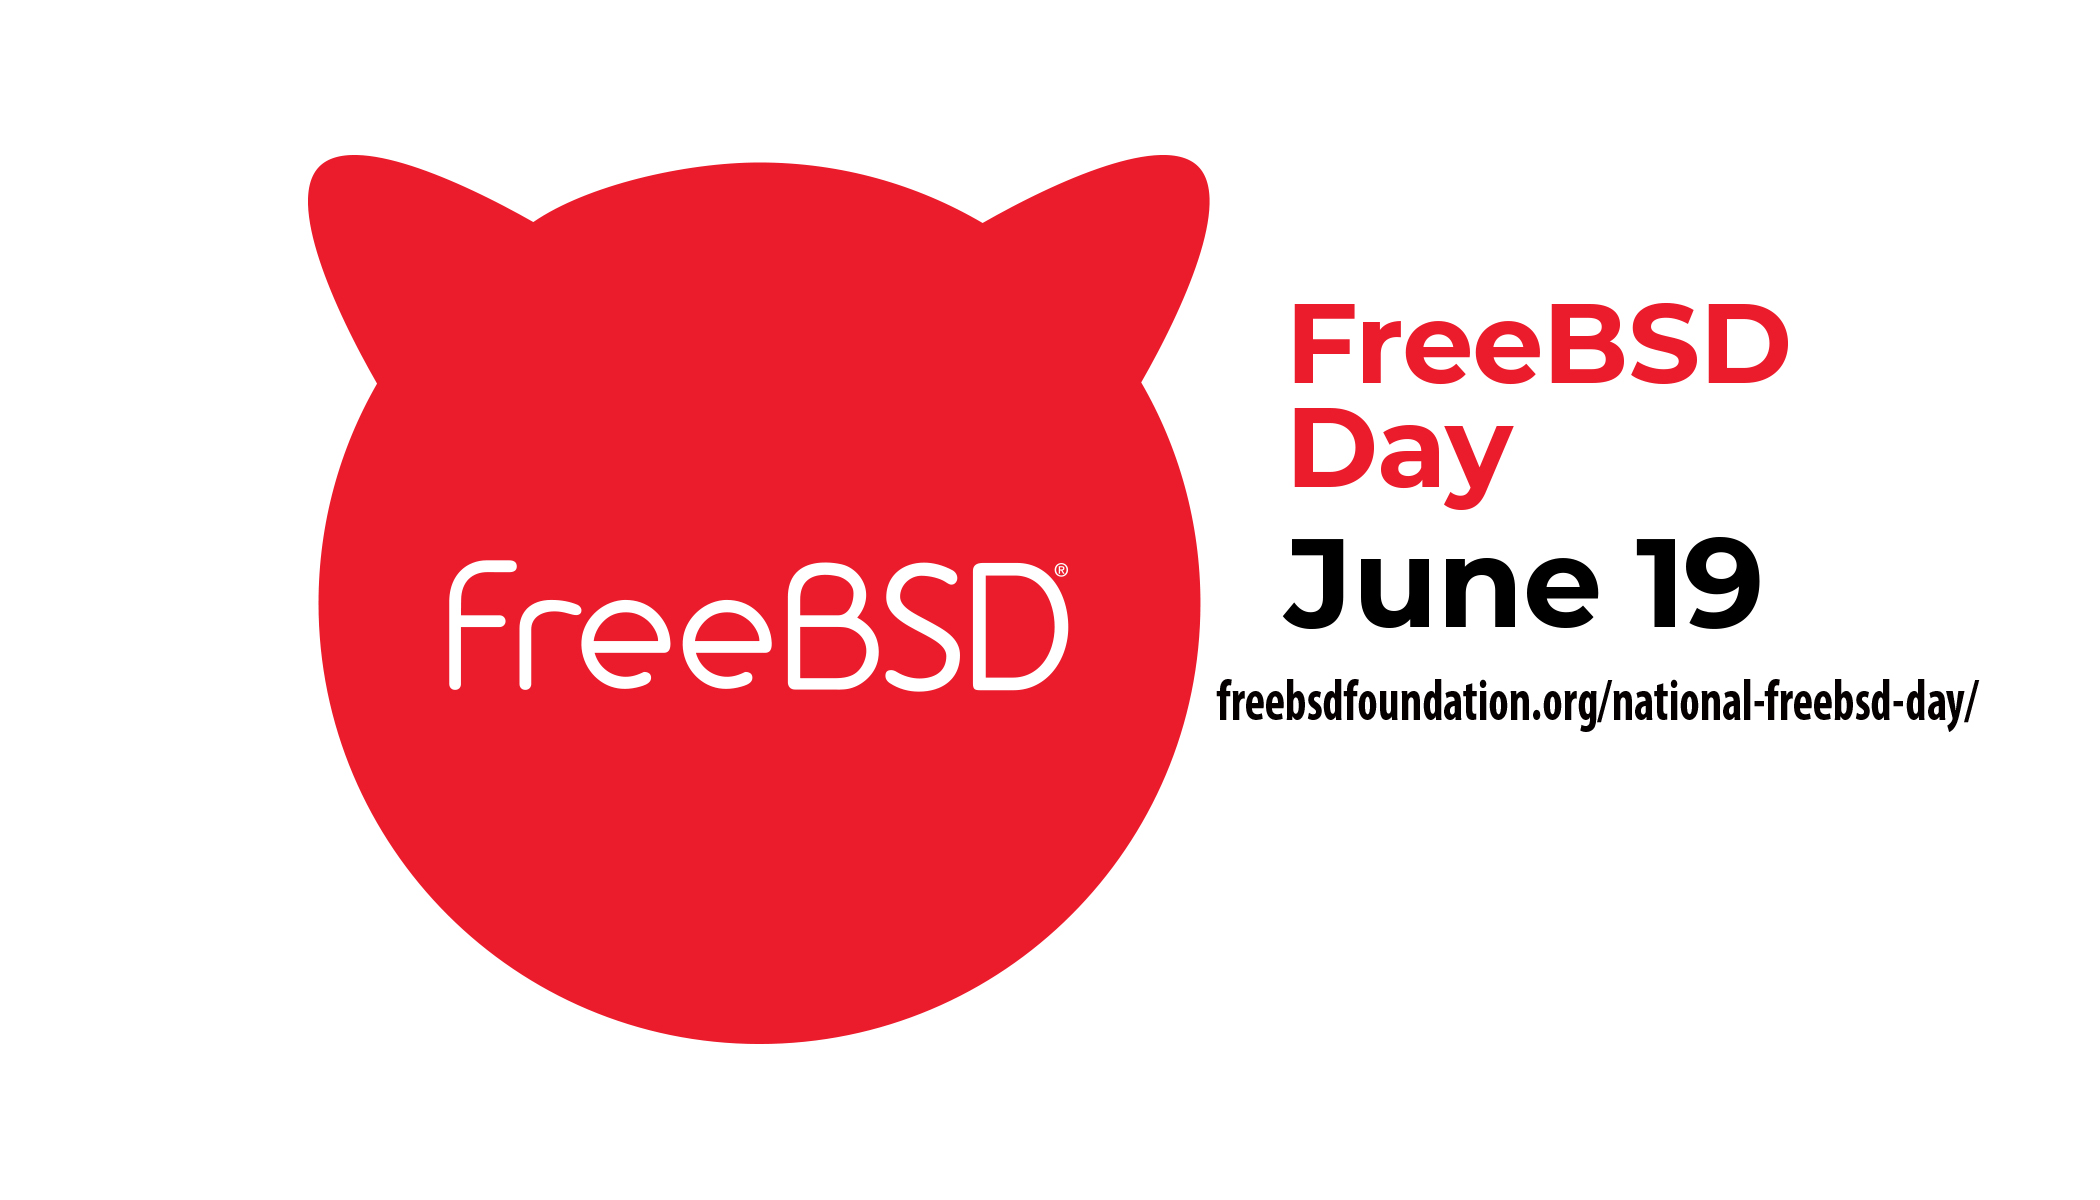 FreeBSD Day 2020